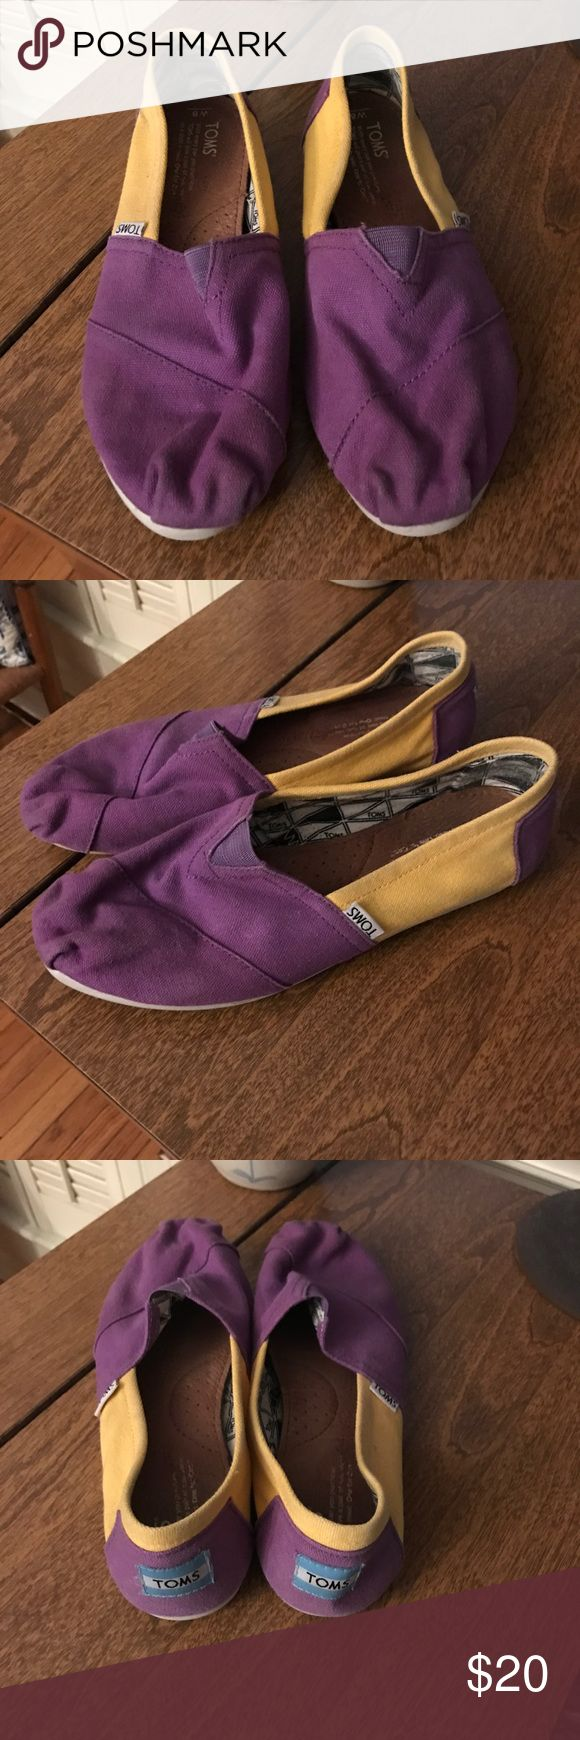 Purple and Gold LSU Toms Size 8 Gently worn (1-2 times!) purple and gold LSU Toms. Get ready for back to school at Louisiana State University with these Toms. Size 8. Comes from a smoke and pet free home. Toms Shoes Sneakers